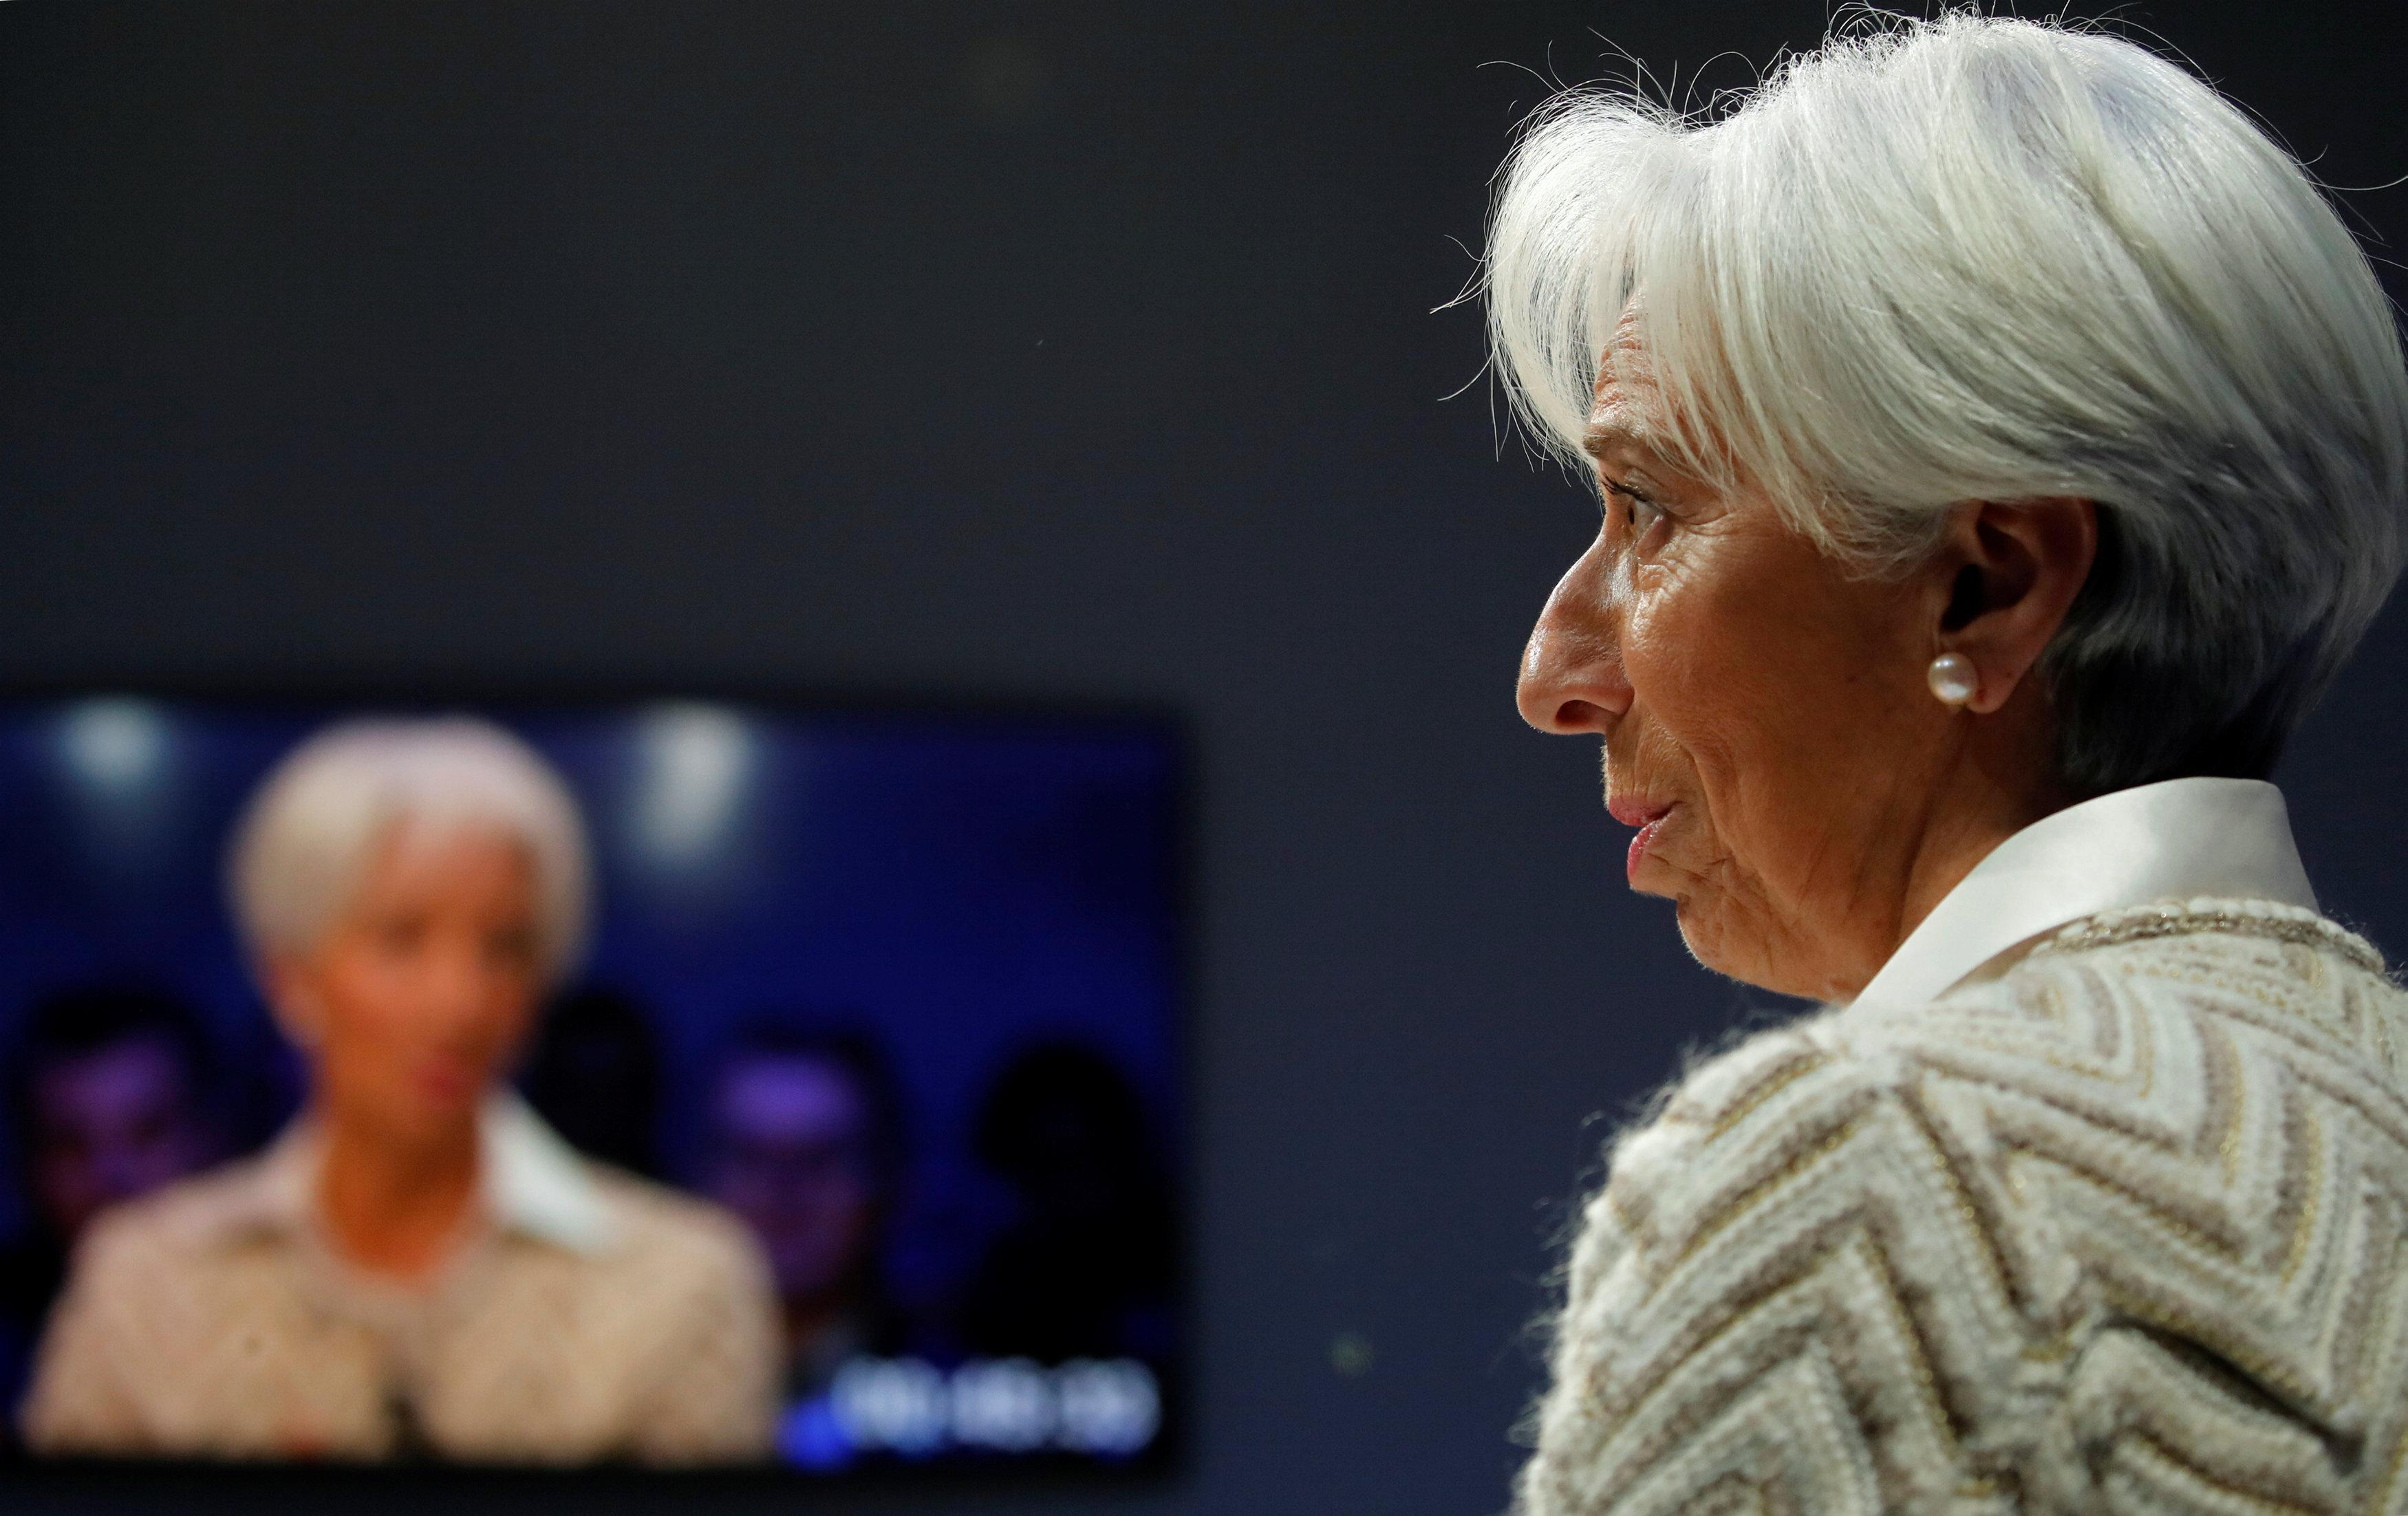 IMF chief tells poor countries to cut use of global consultancy firms